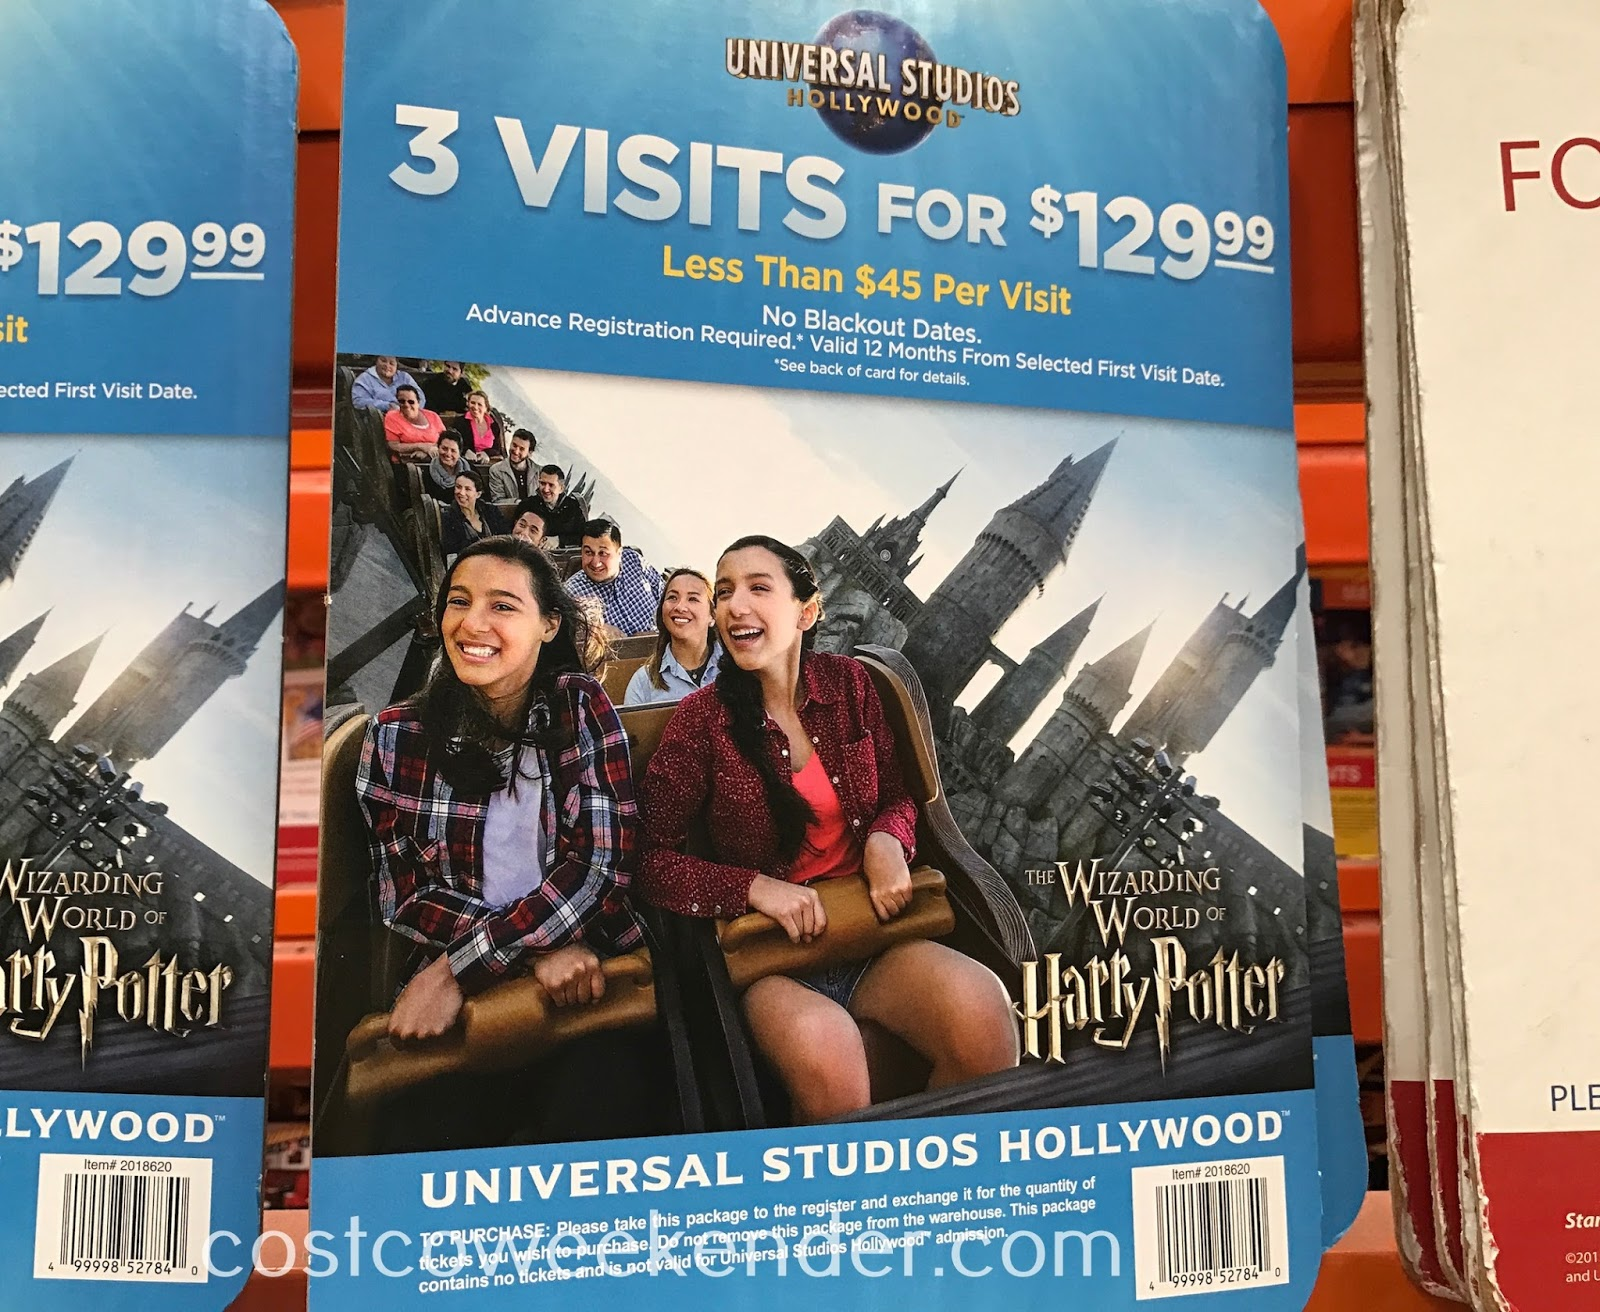 Get your summer plans booked with the Universal Studios Hollywood 3 Visit Ticket